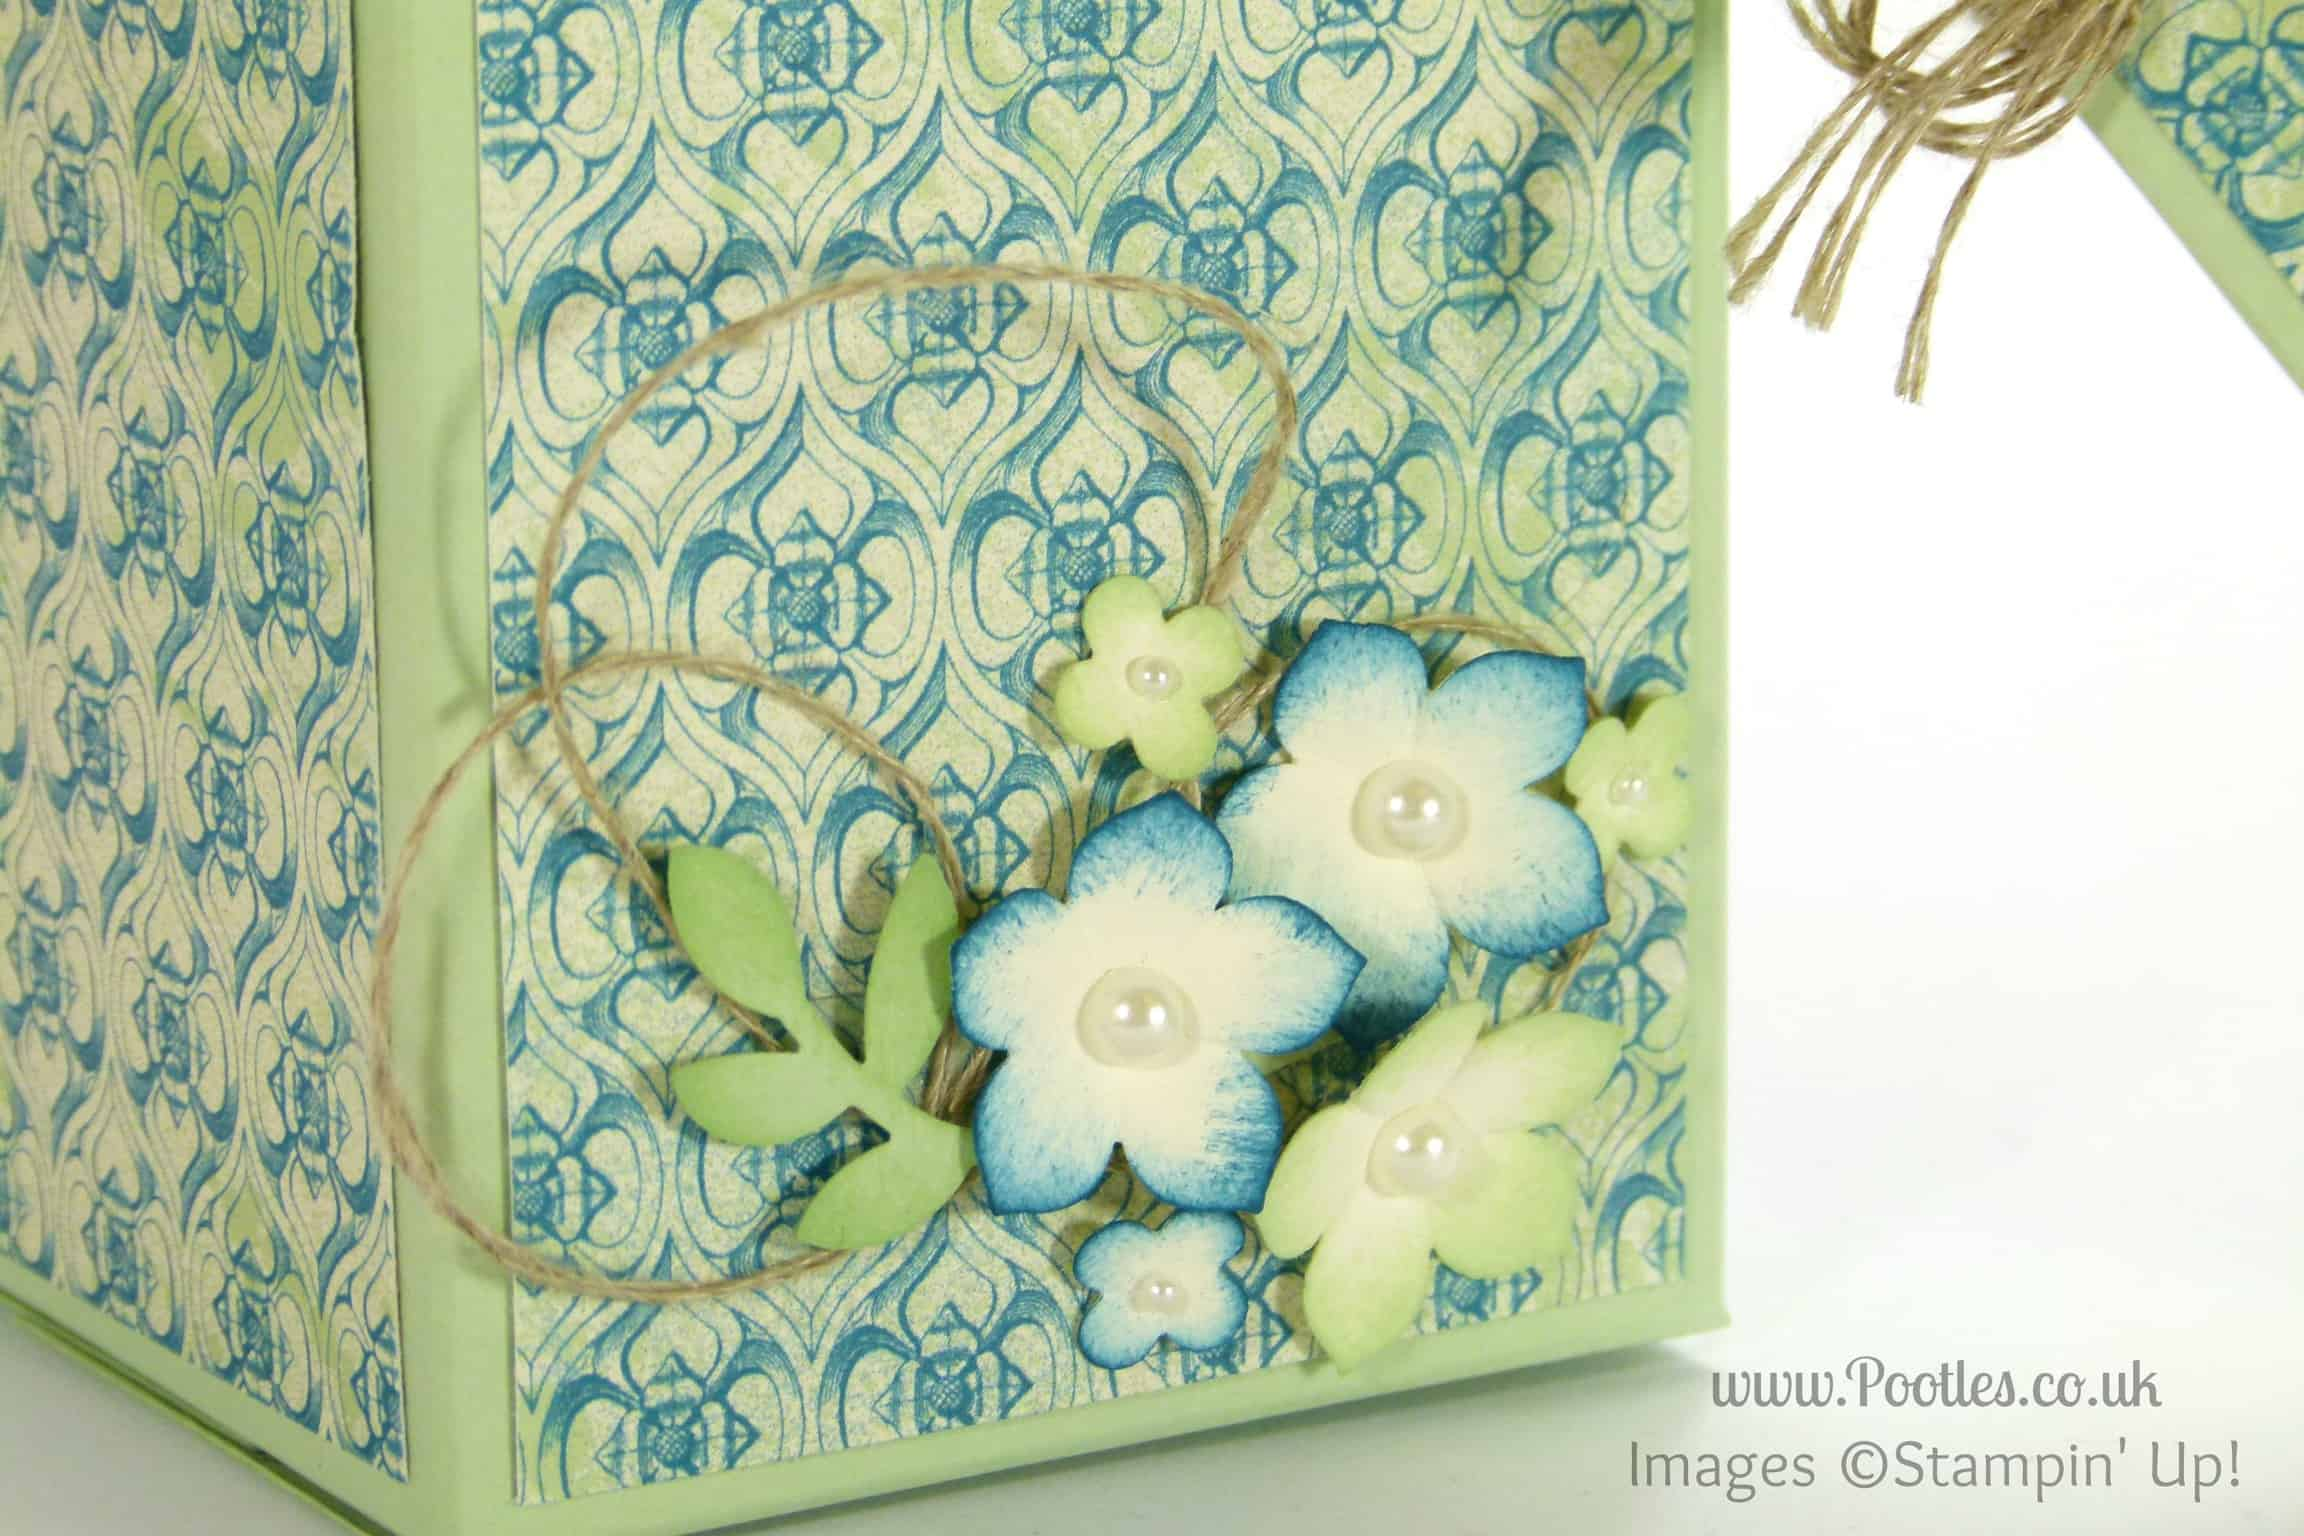 Stampin' Up! UK Demonstrator Pootles - 2 boxes from one sheet of Cardstock Tutorial close up